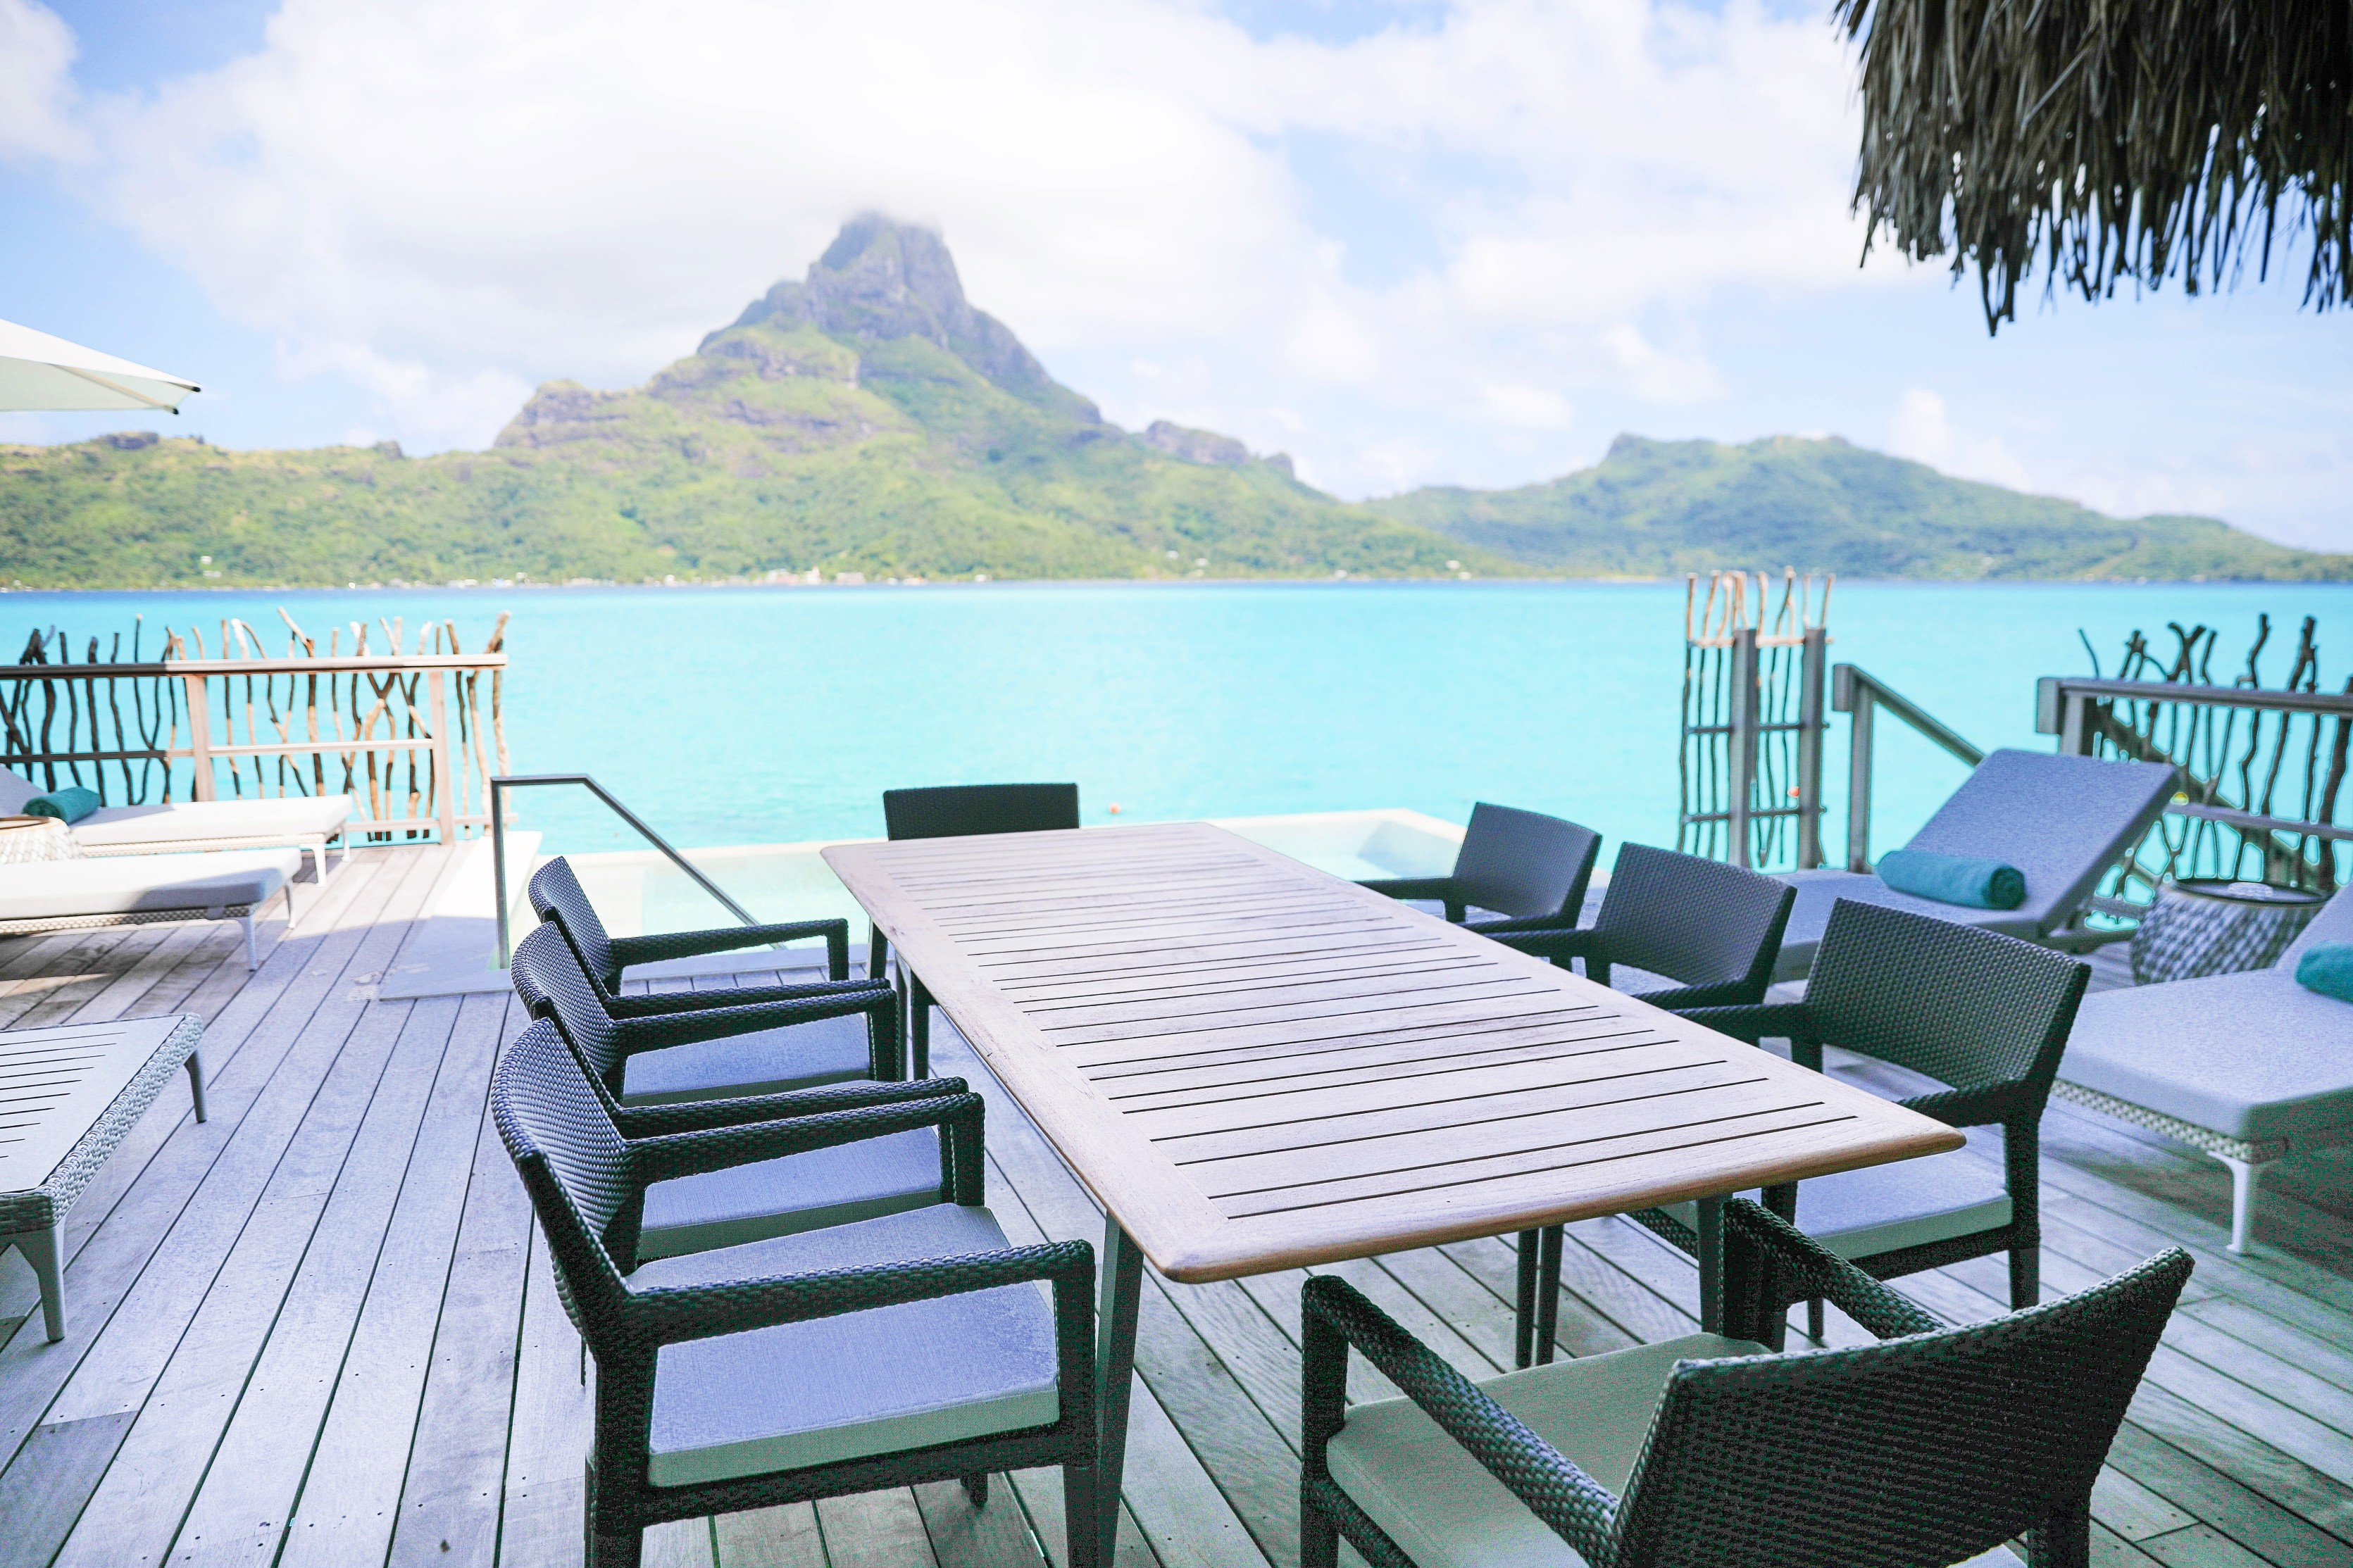 Bora Bora Villa tour at the Intercontinental Hotel Thalasso ! Lauren Lindmark is a fashion and travel blogger! See travel photos of the beautiful blue ocean in Bora Bora, French Polynesia on fashion blog daily dose of charm by lauren Lindmark